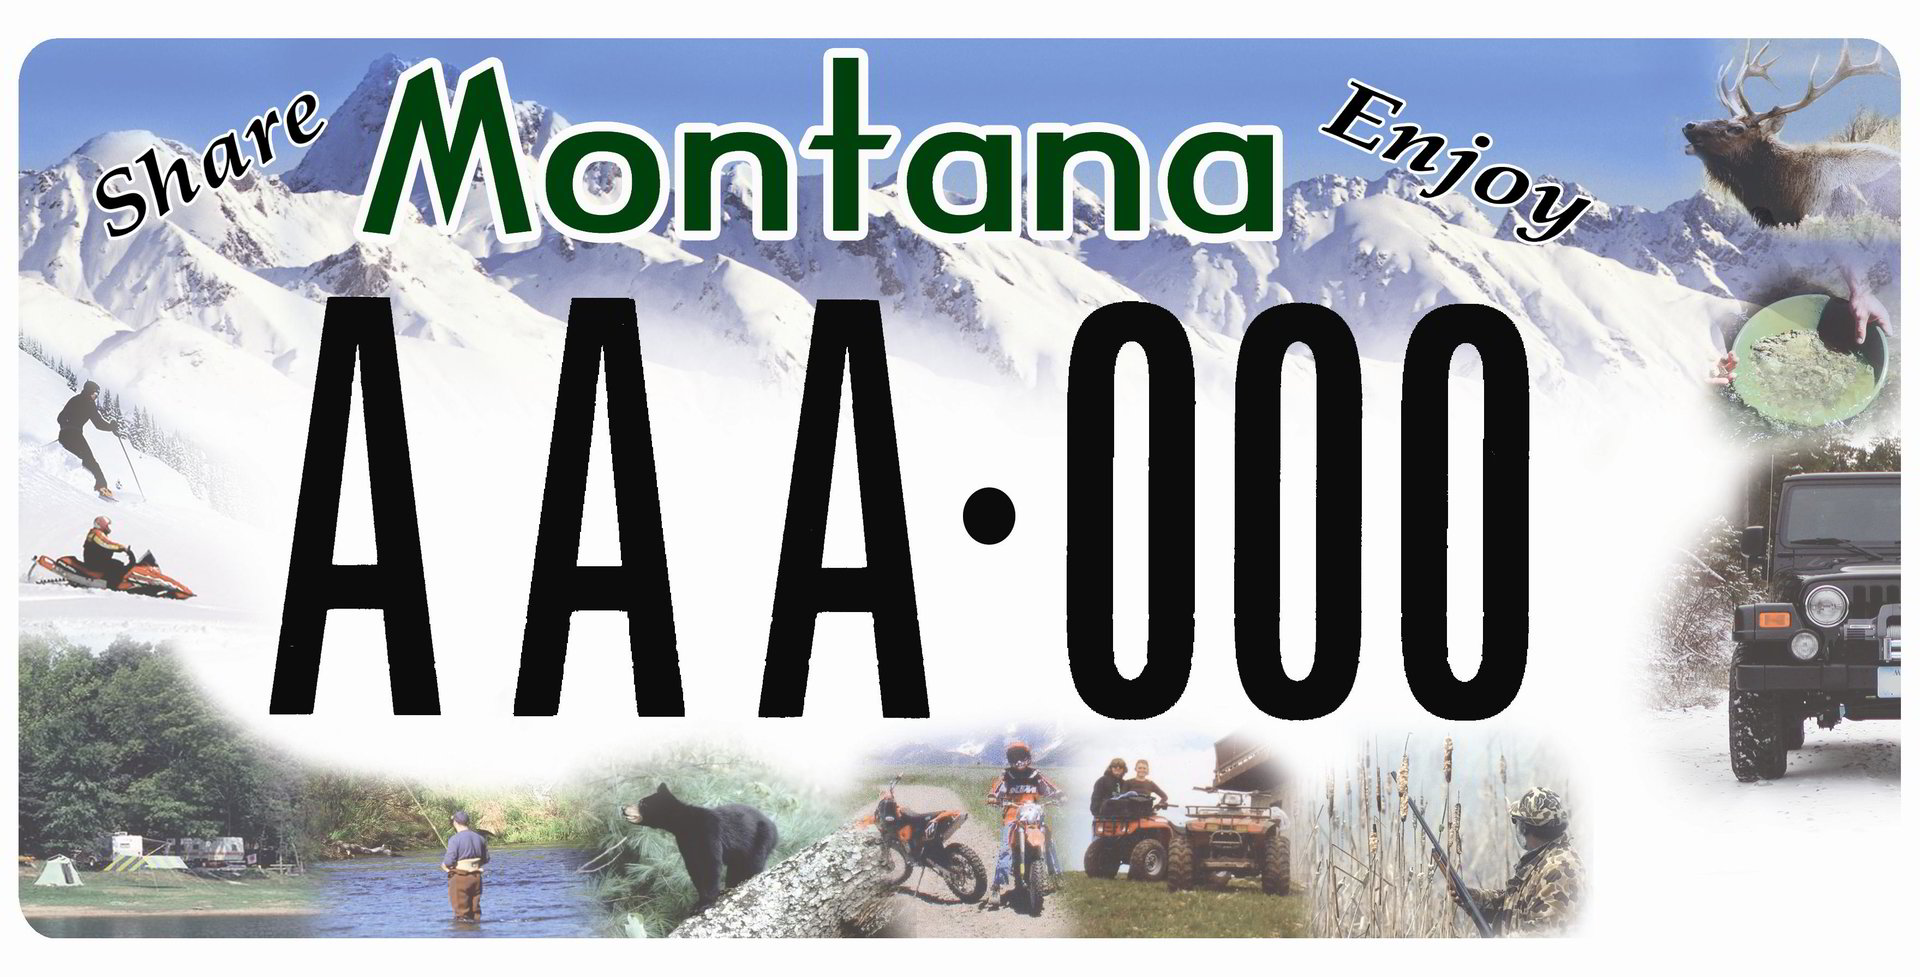 Citizens for Balanced Use License Plate